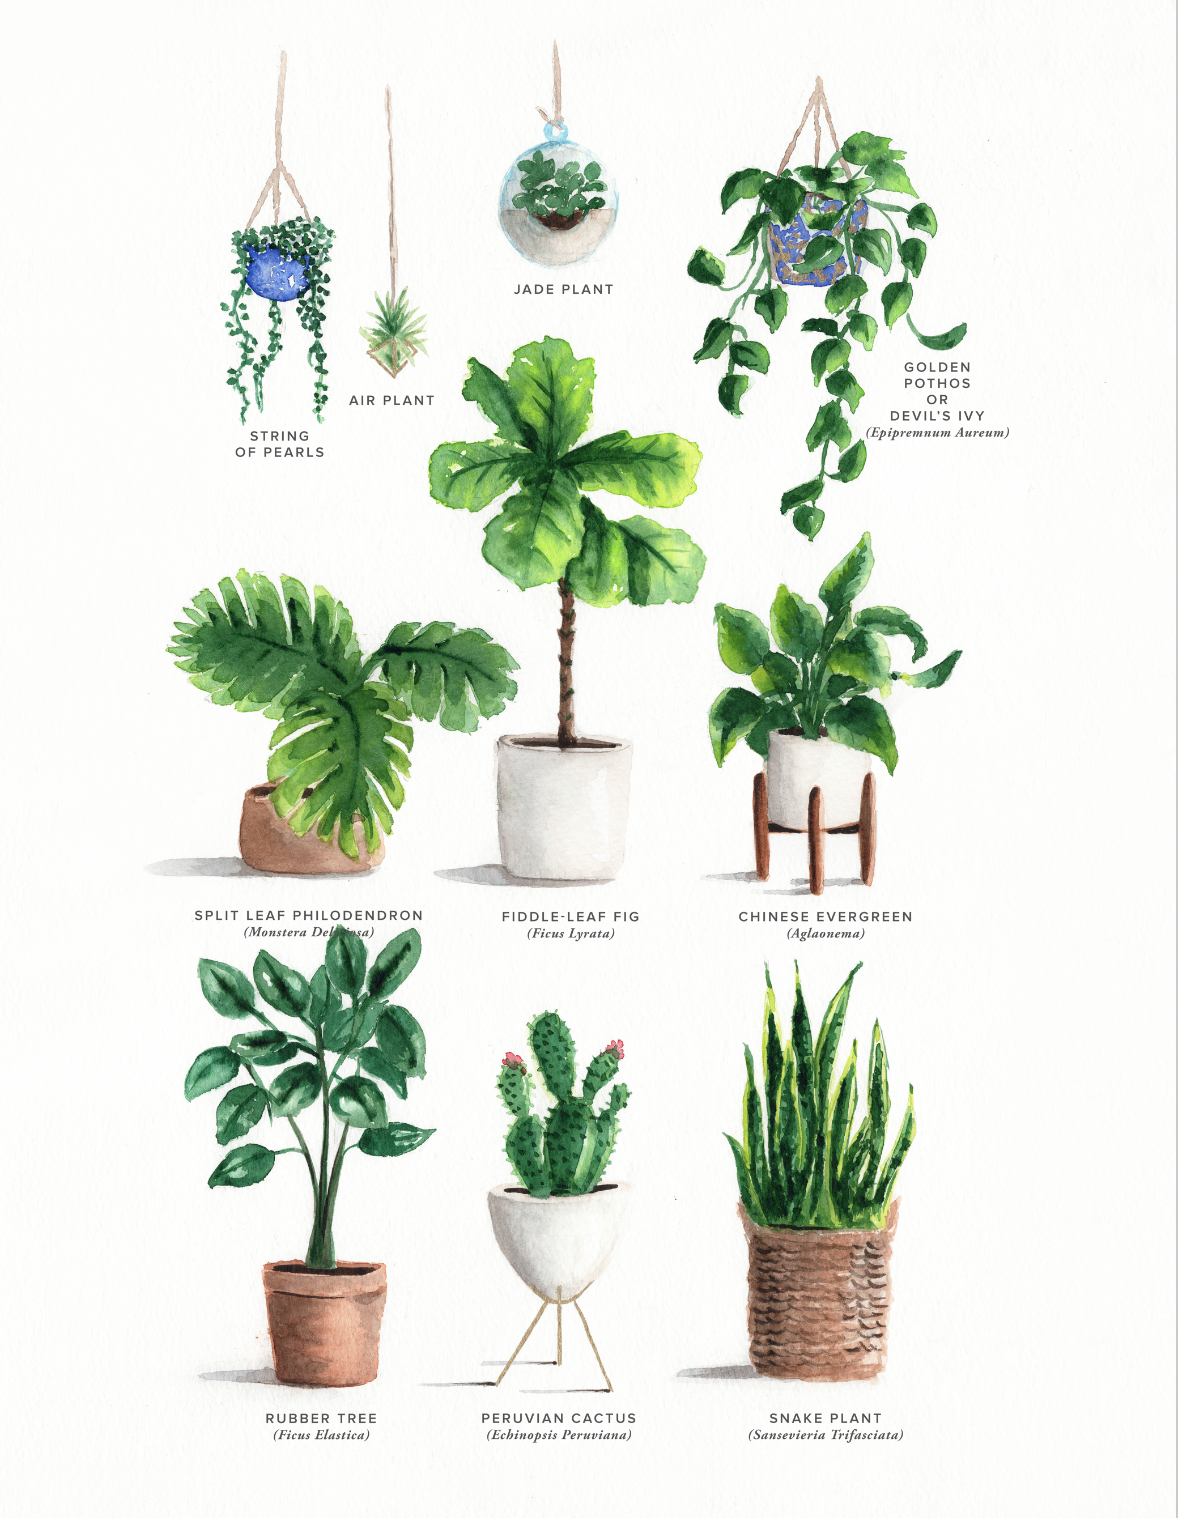 12. Green it up - Purify the air and bring in a sense of the organic with affordable plants that are easy to manage. And if you're short on space, a couple of petite succulents will do the trick perfectly.